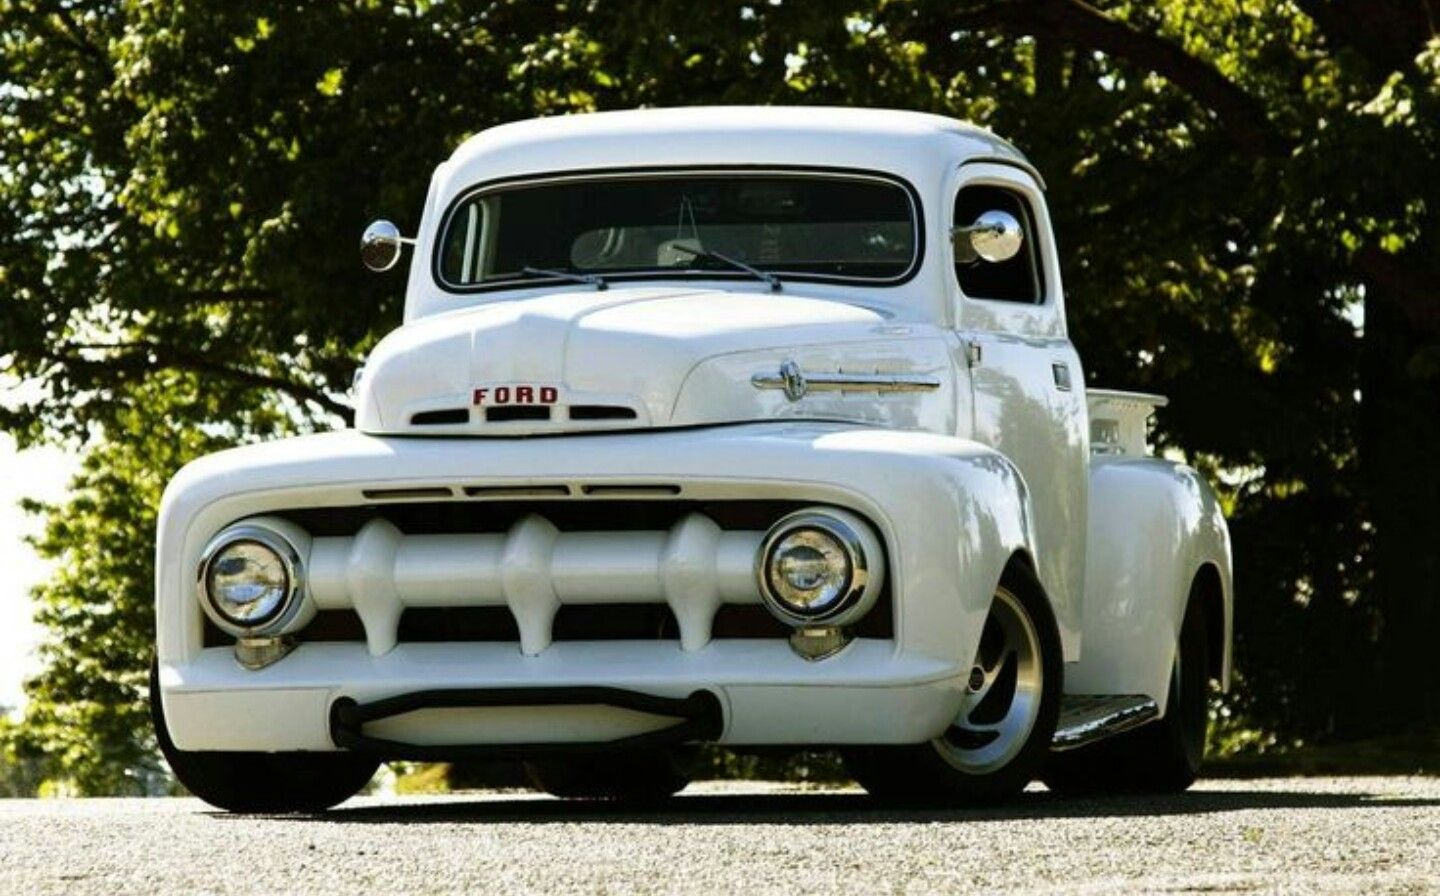 51 Ford F-1